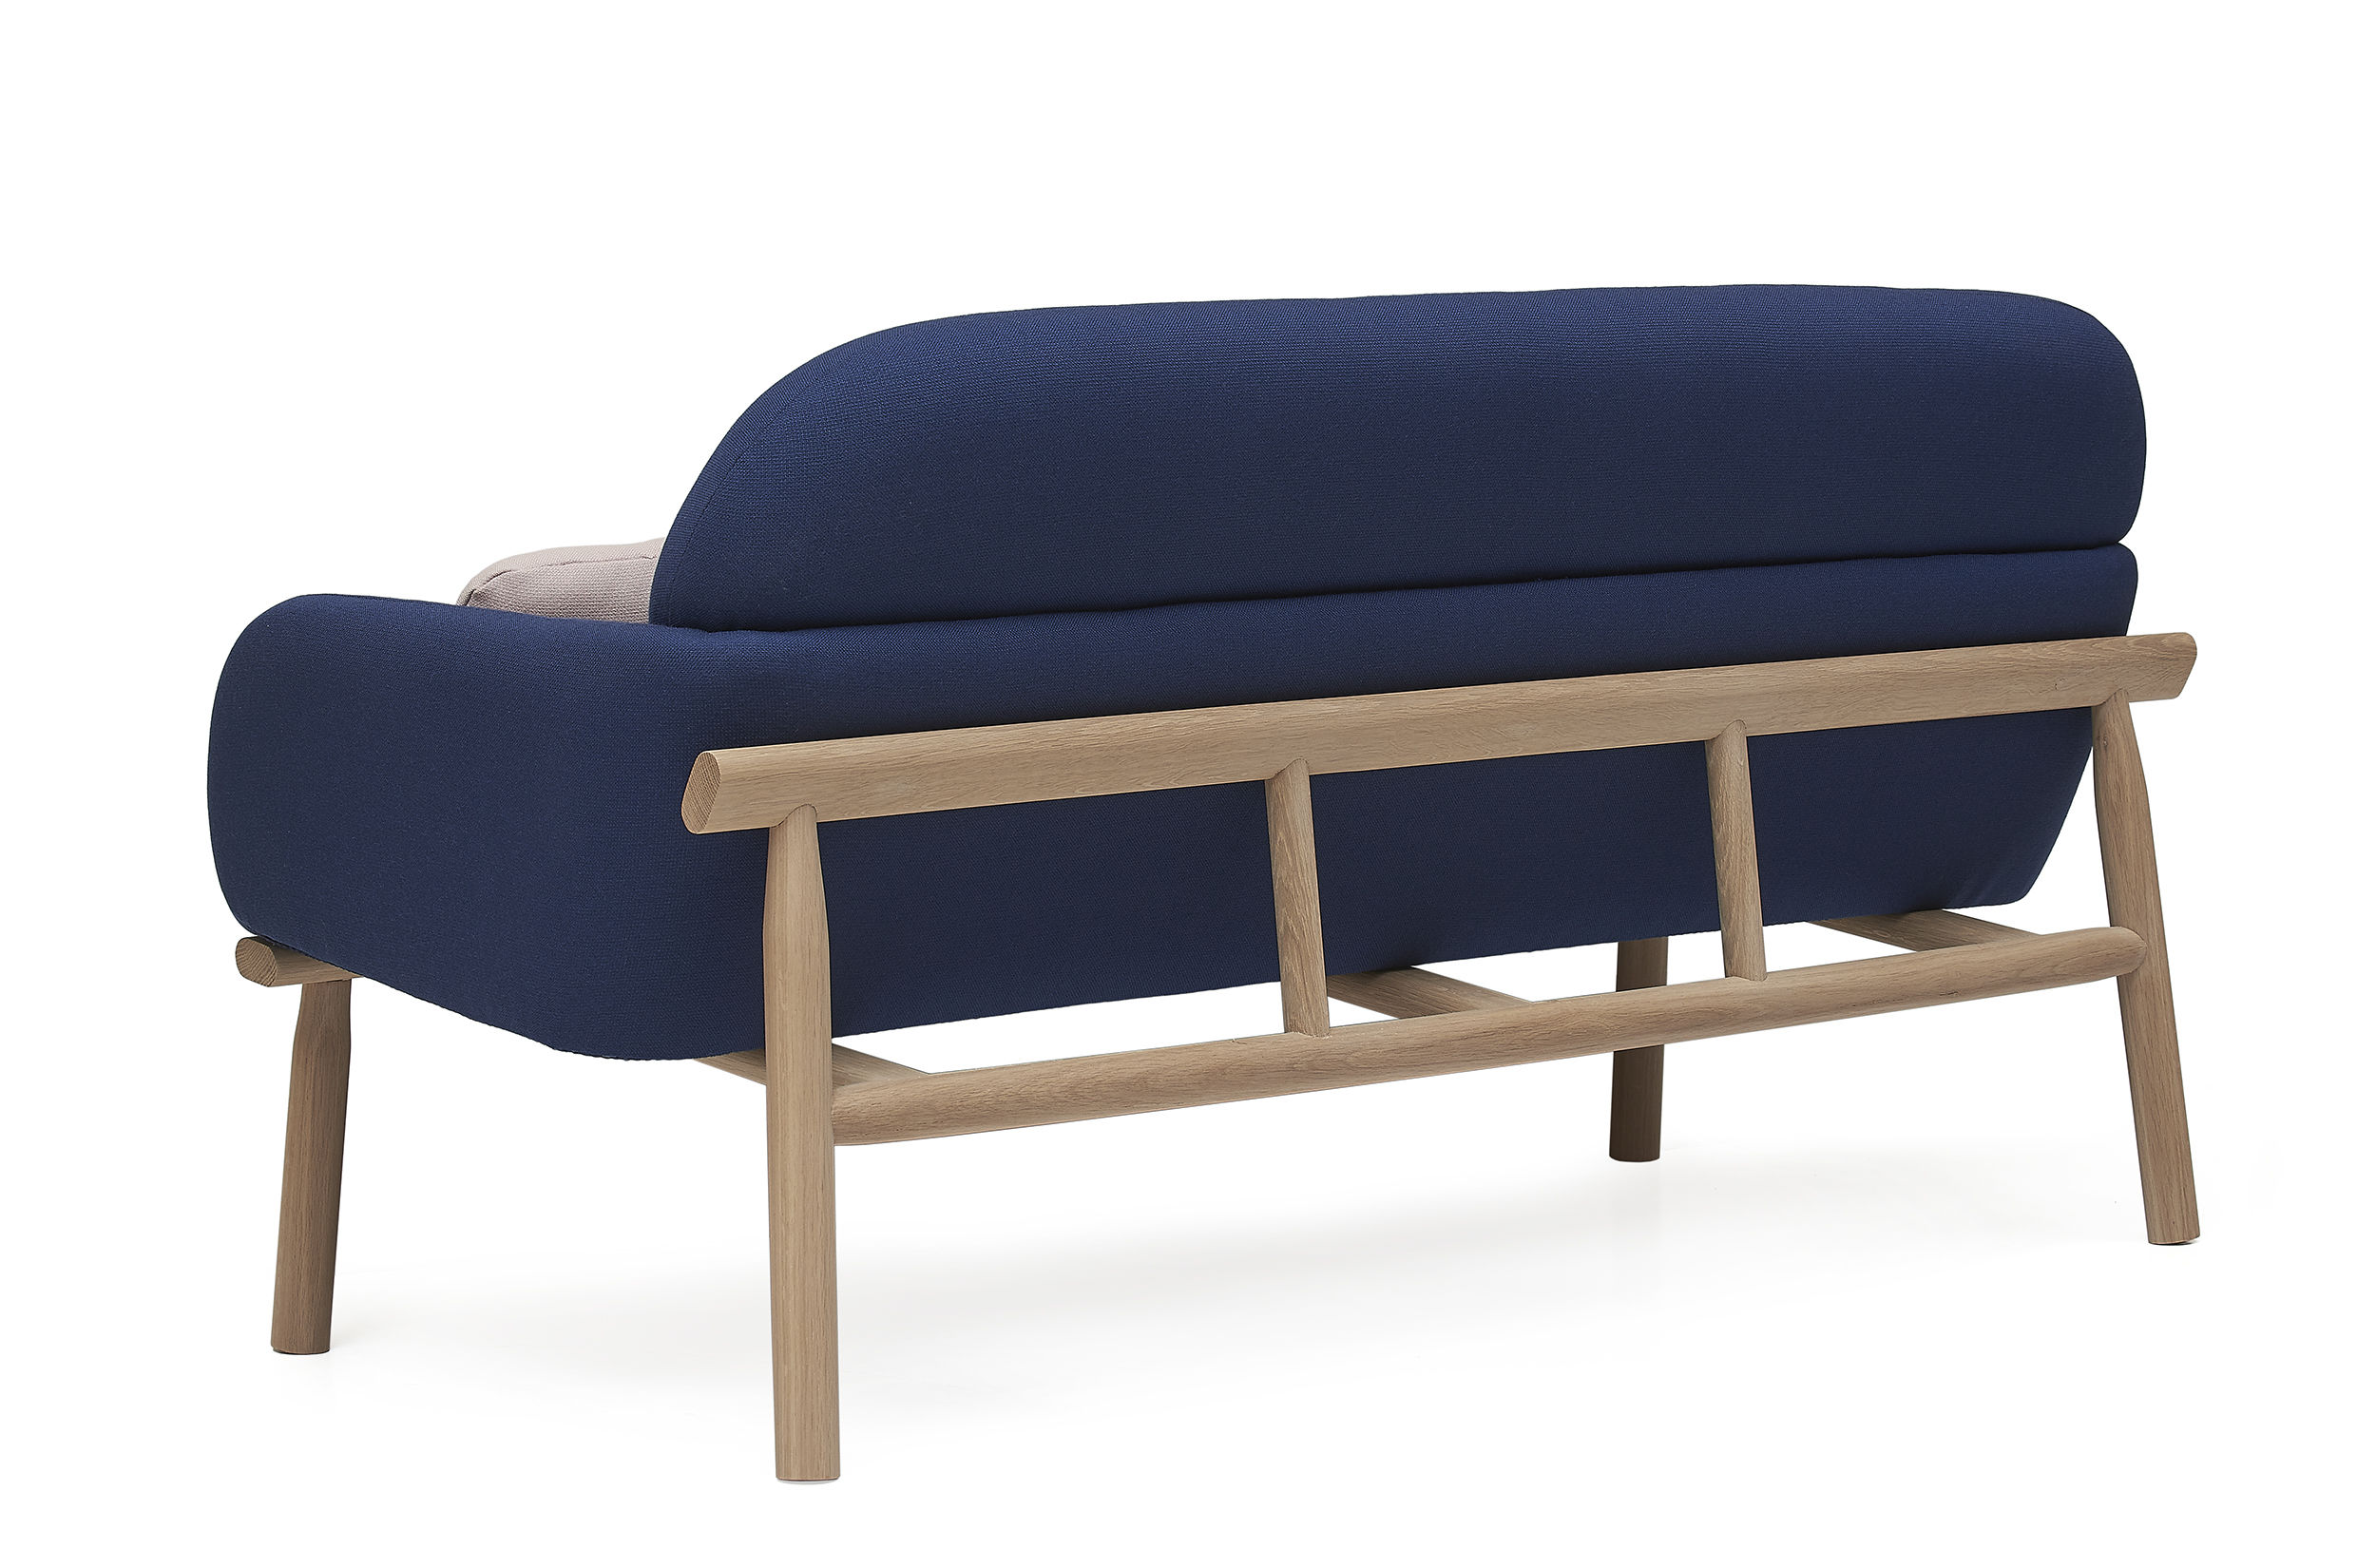 georges straight sofa 2 places l 146 cm navy blue blue and pink cushions by hart. Black Bedroom Furniture Sets. Home Design Ideas